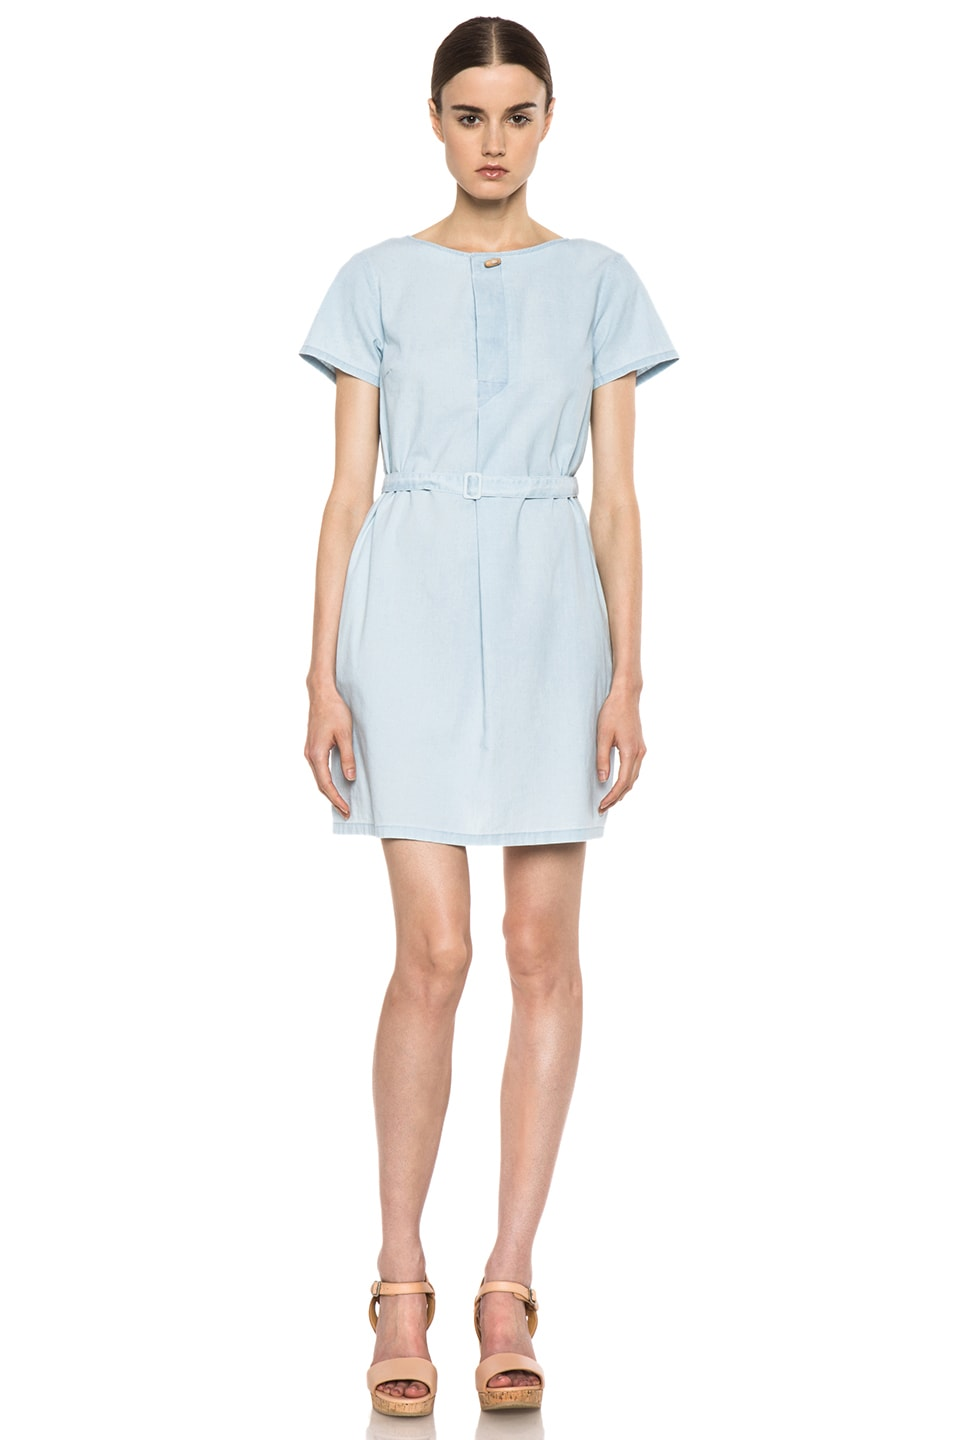 Image 1 of A.P.C. Chambray Dress in Bleu Ciel